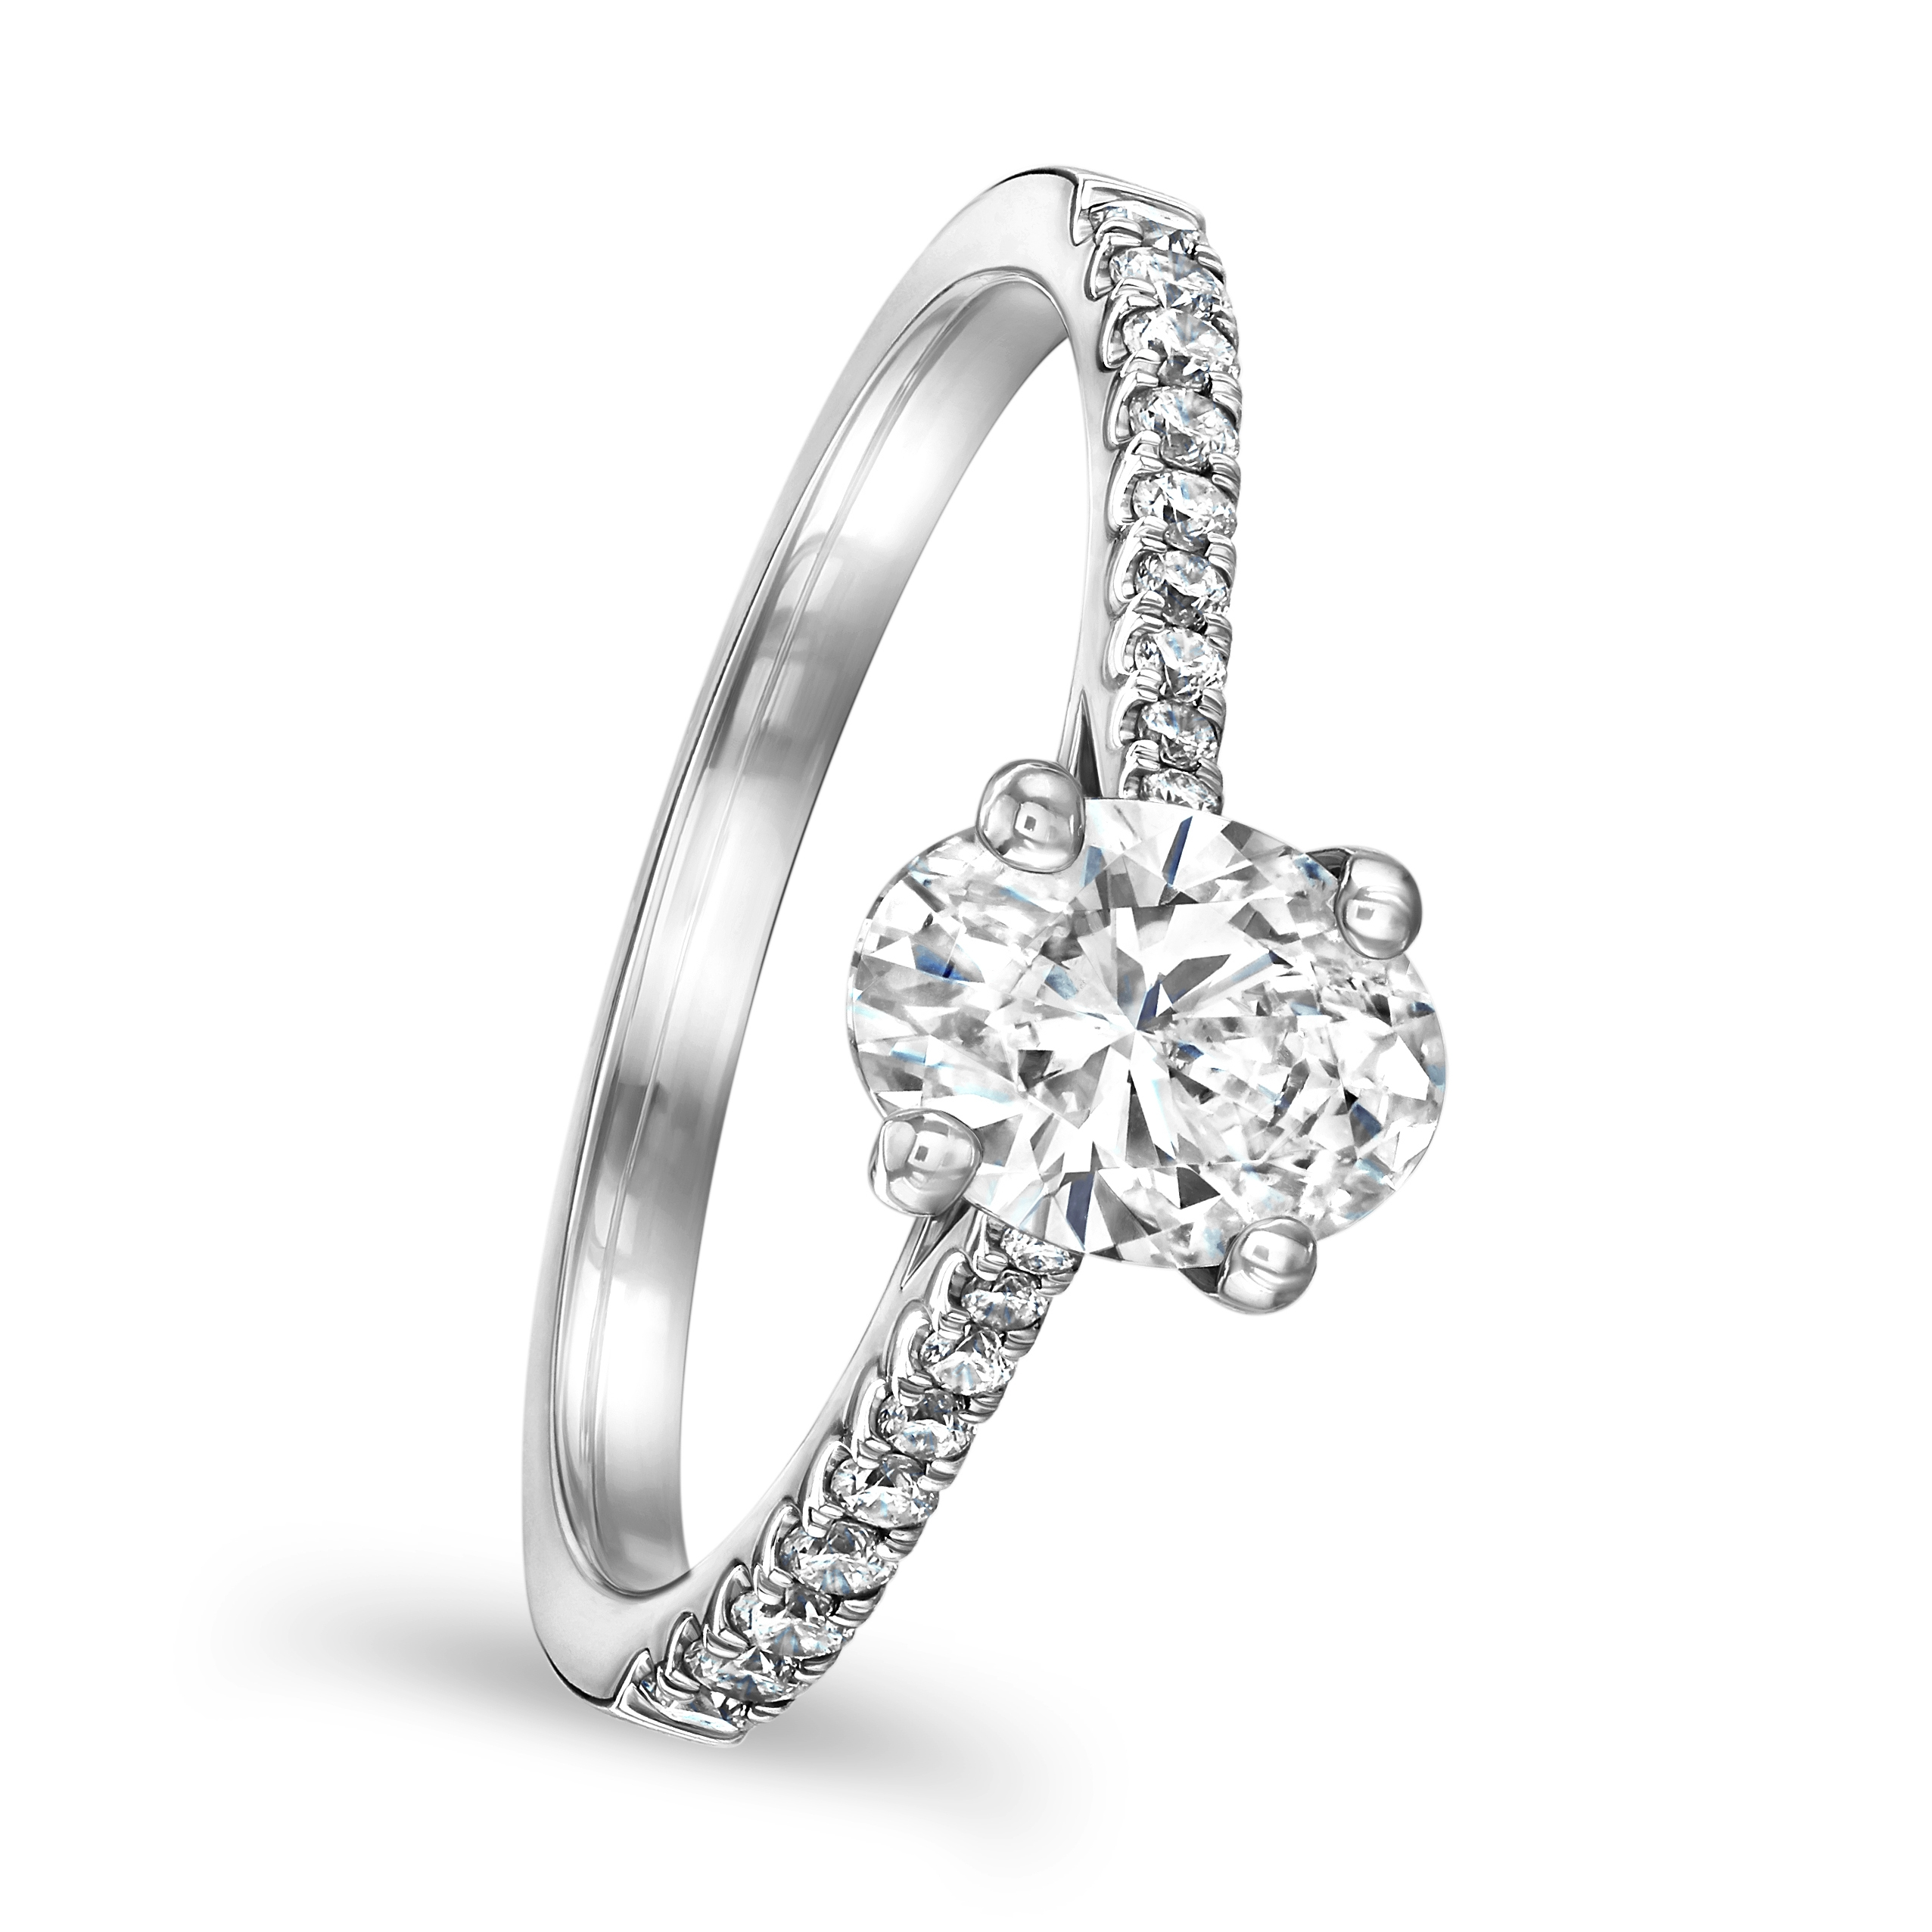 Oval Cut Platinum Diamond Ring